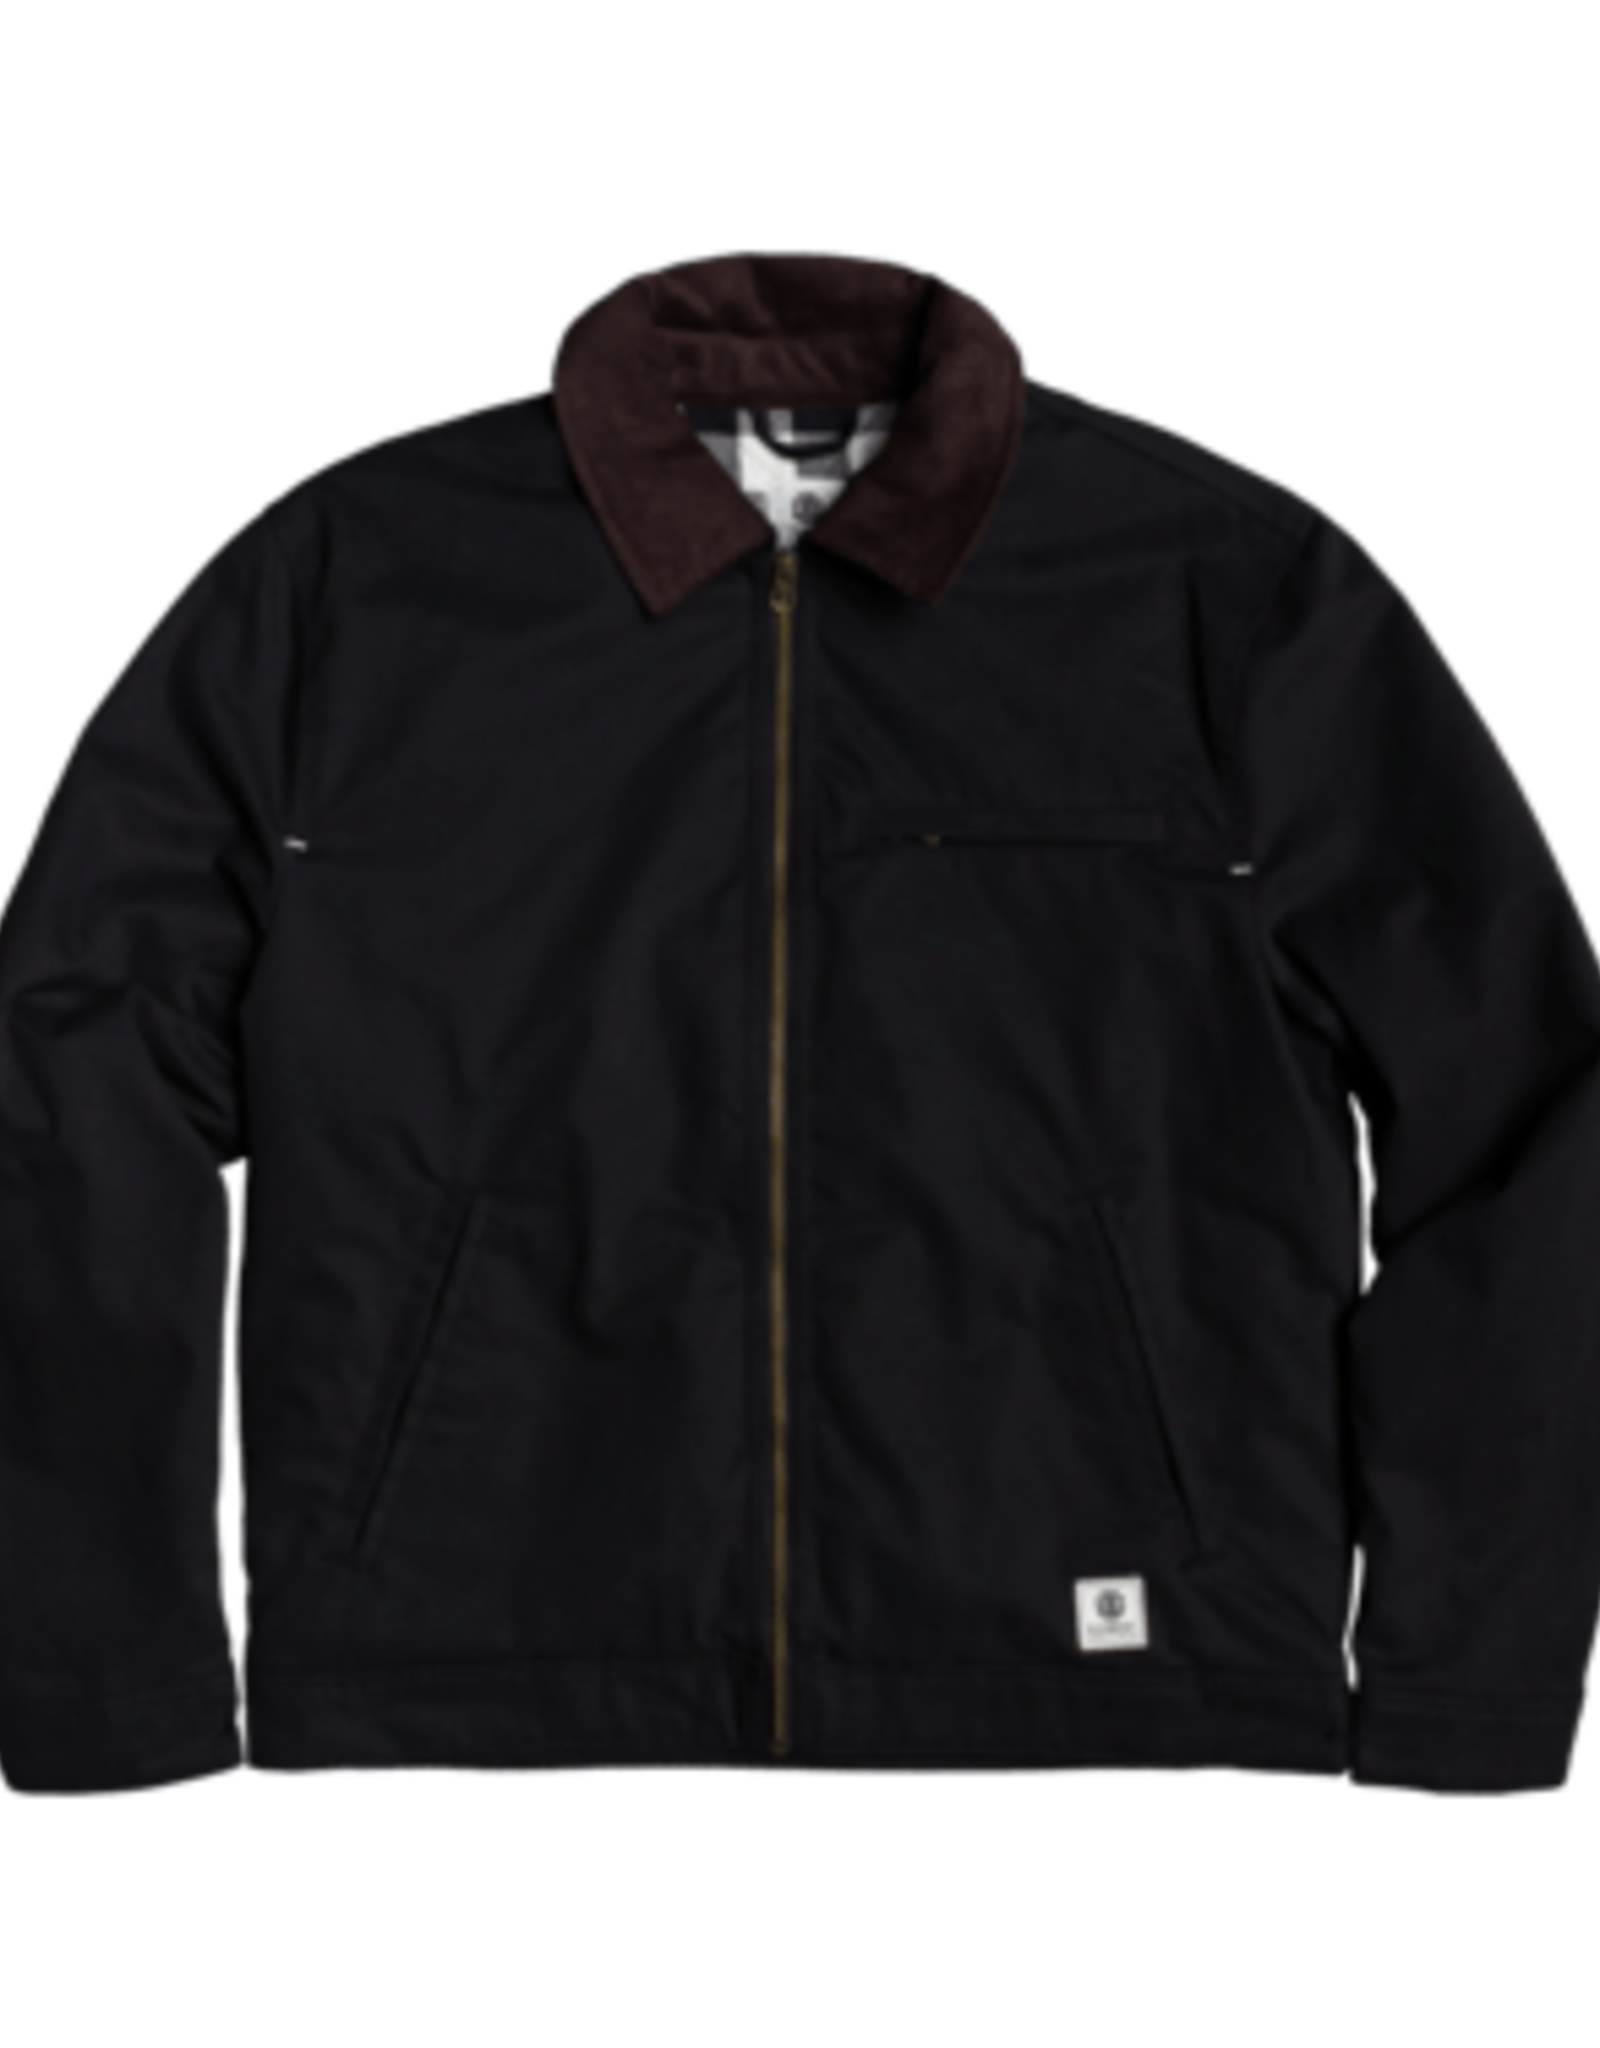 Element CRAFTMAN ZIP JACKET FLINT BLACK MD